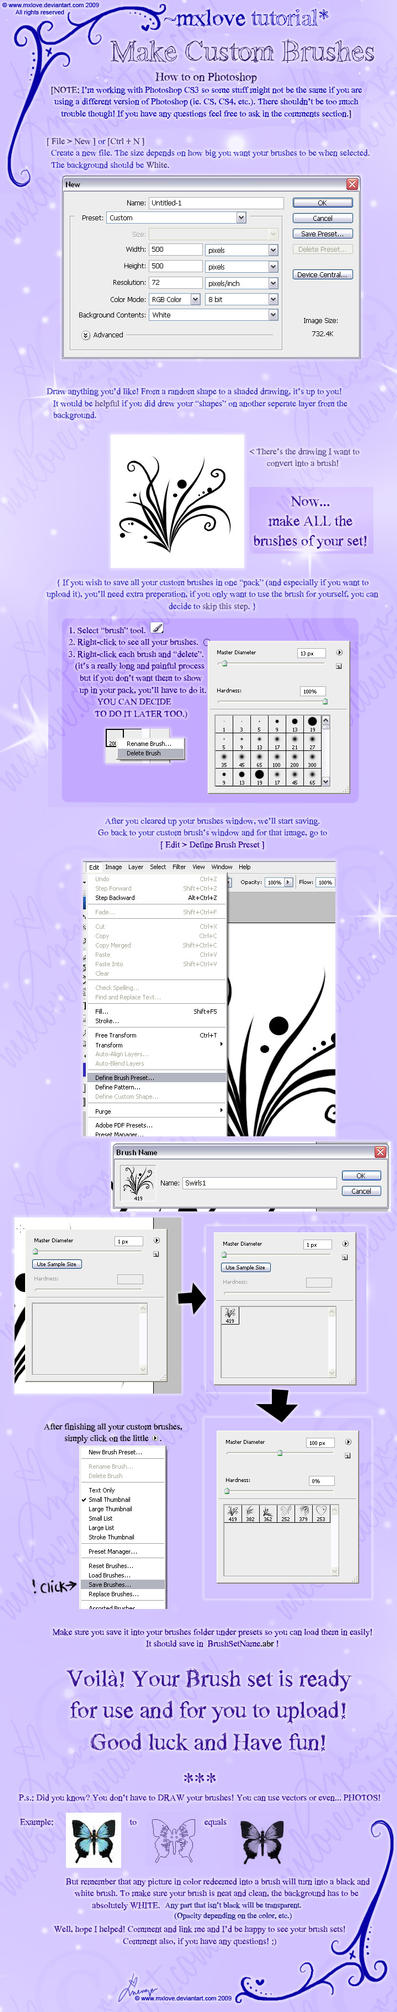 Make your own PS Brushes - Tut by mxlove